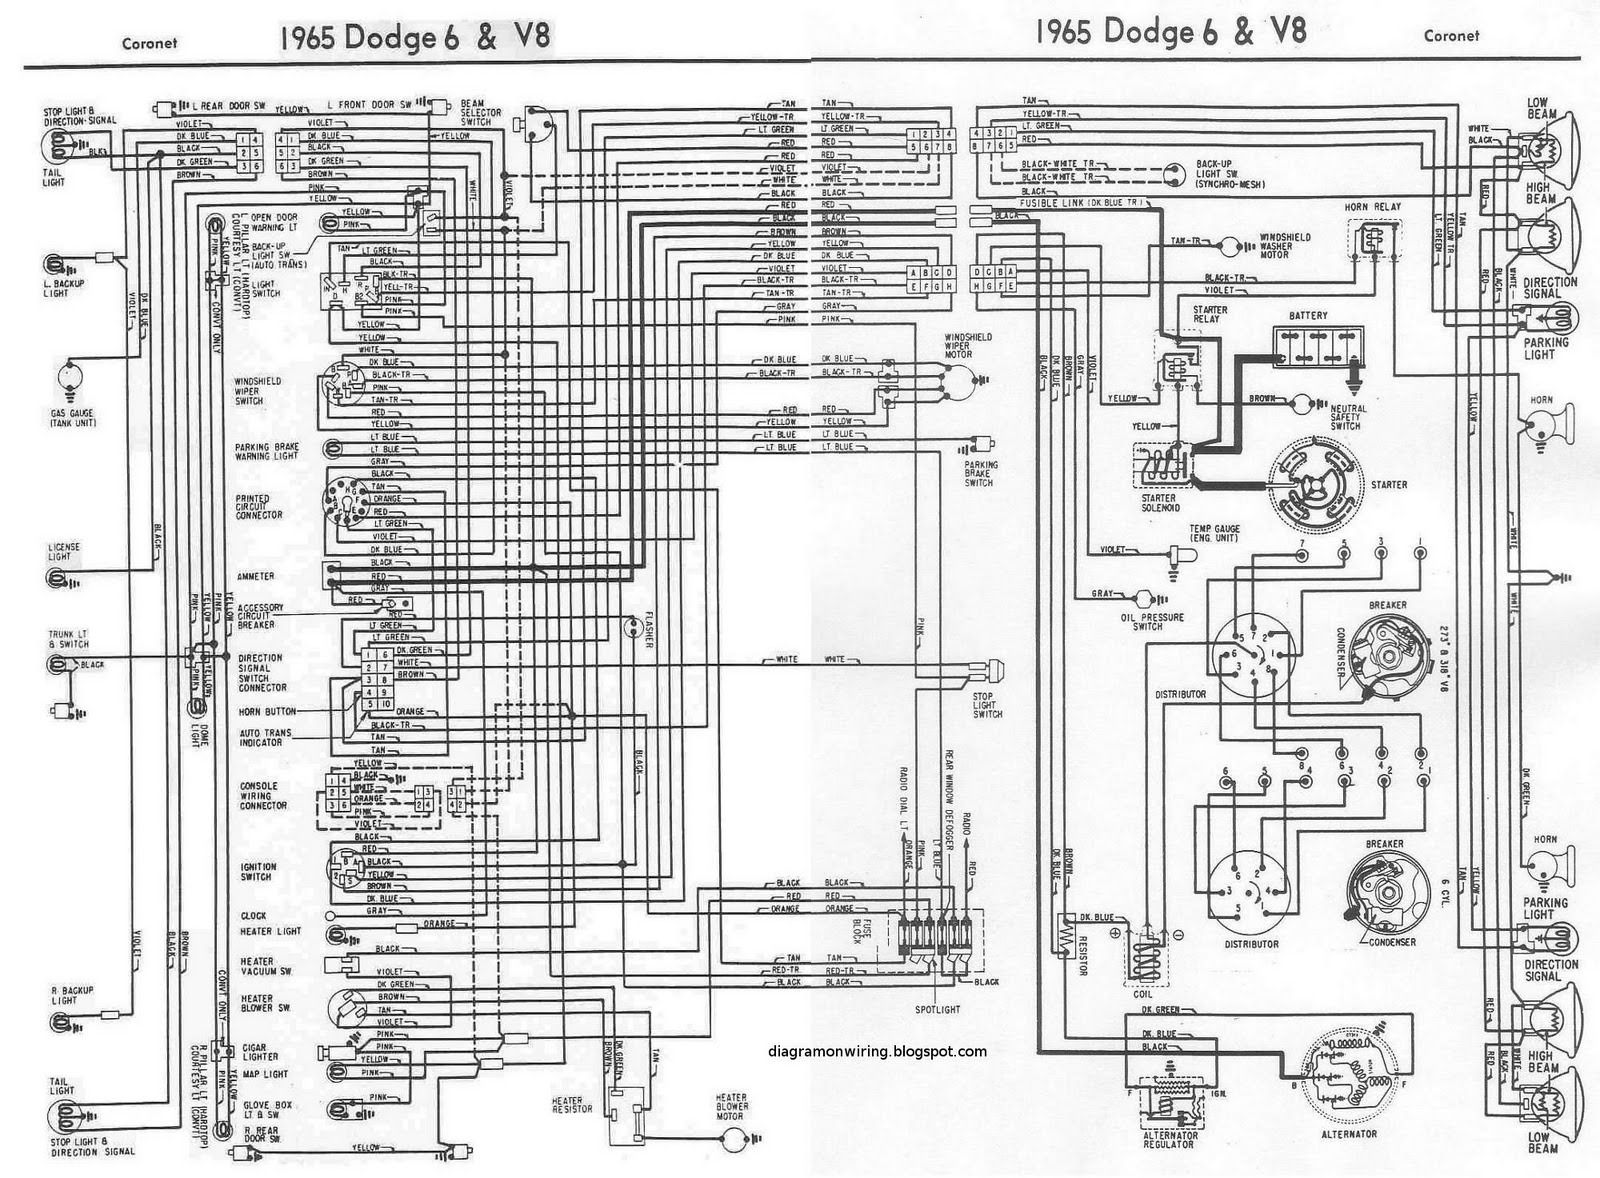 medium resolution of wirings of 1964 plymouth 6 and v8 valiant part 1 diagram data schema diagram 1964 plymouth 6 and v8 valiant part 1 wiring 1964 plymouth